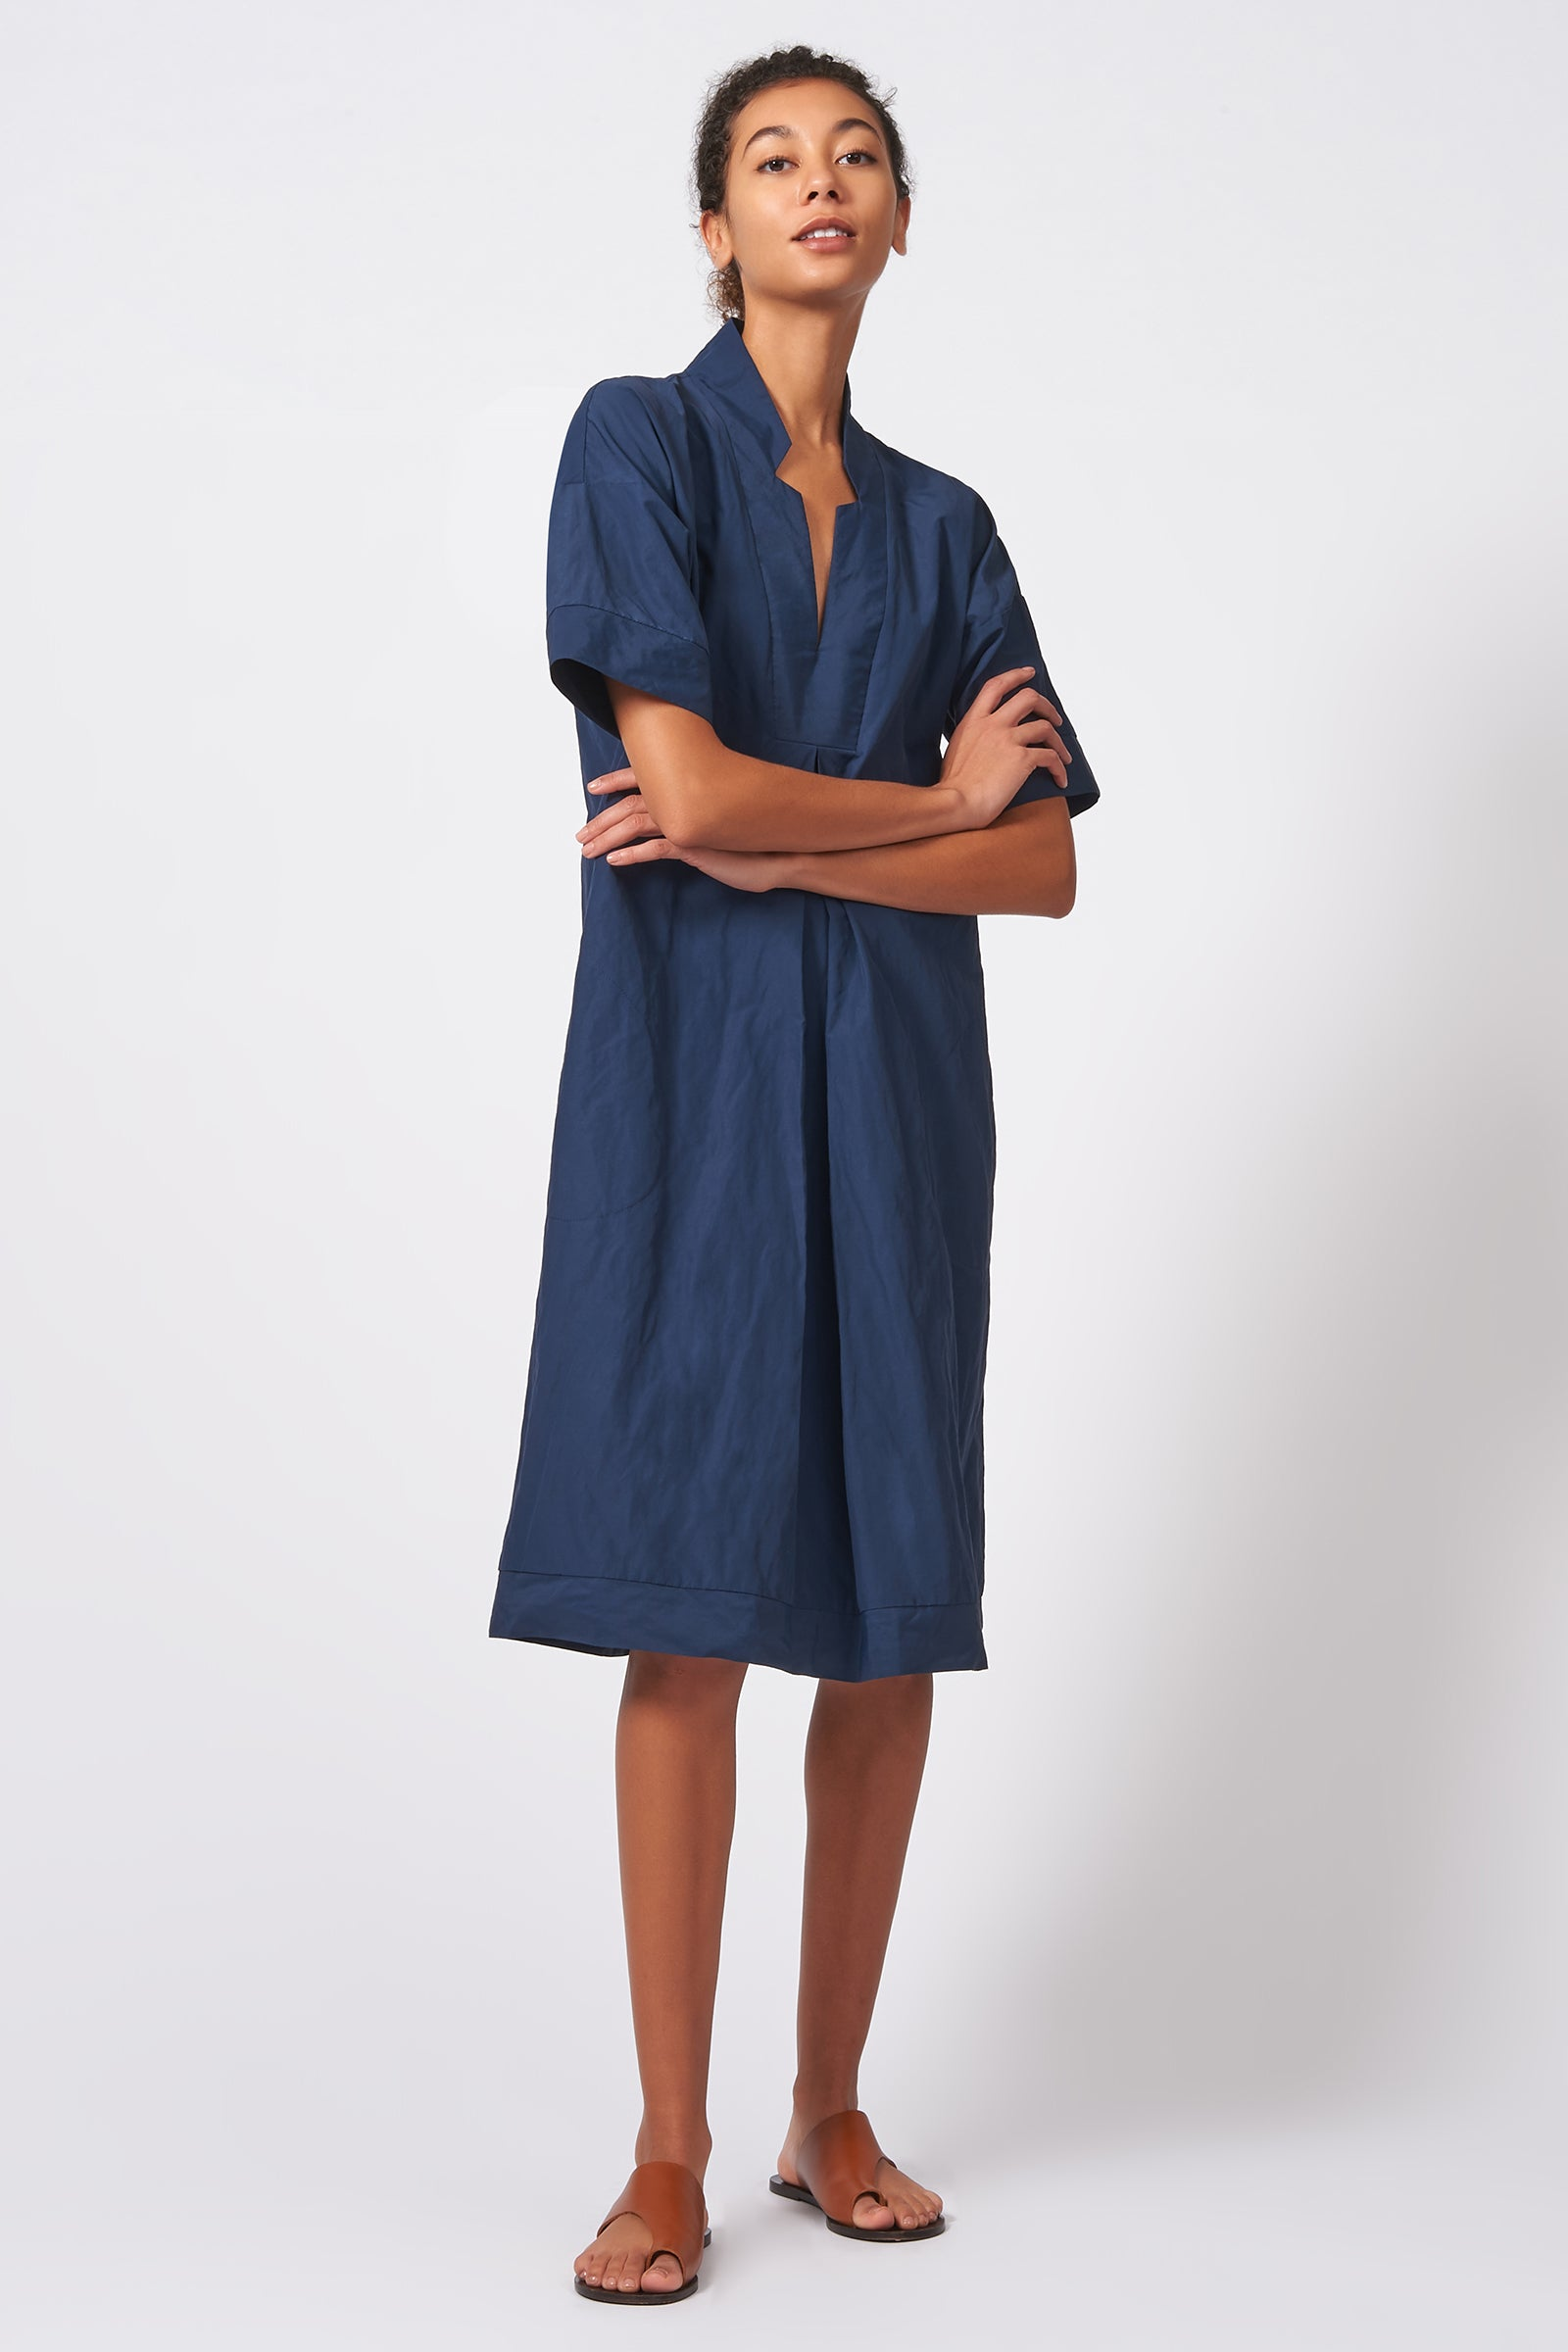 Kal Rieman Notch Placket Dress in Navy Cotton Nylon on Model Full Front Side View